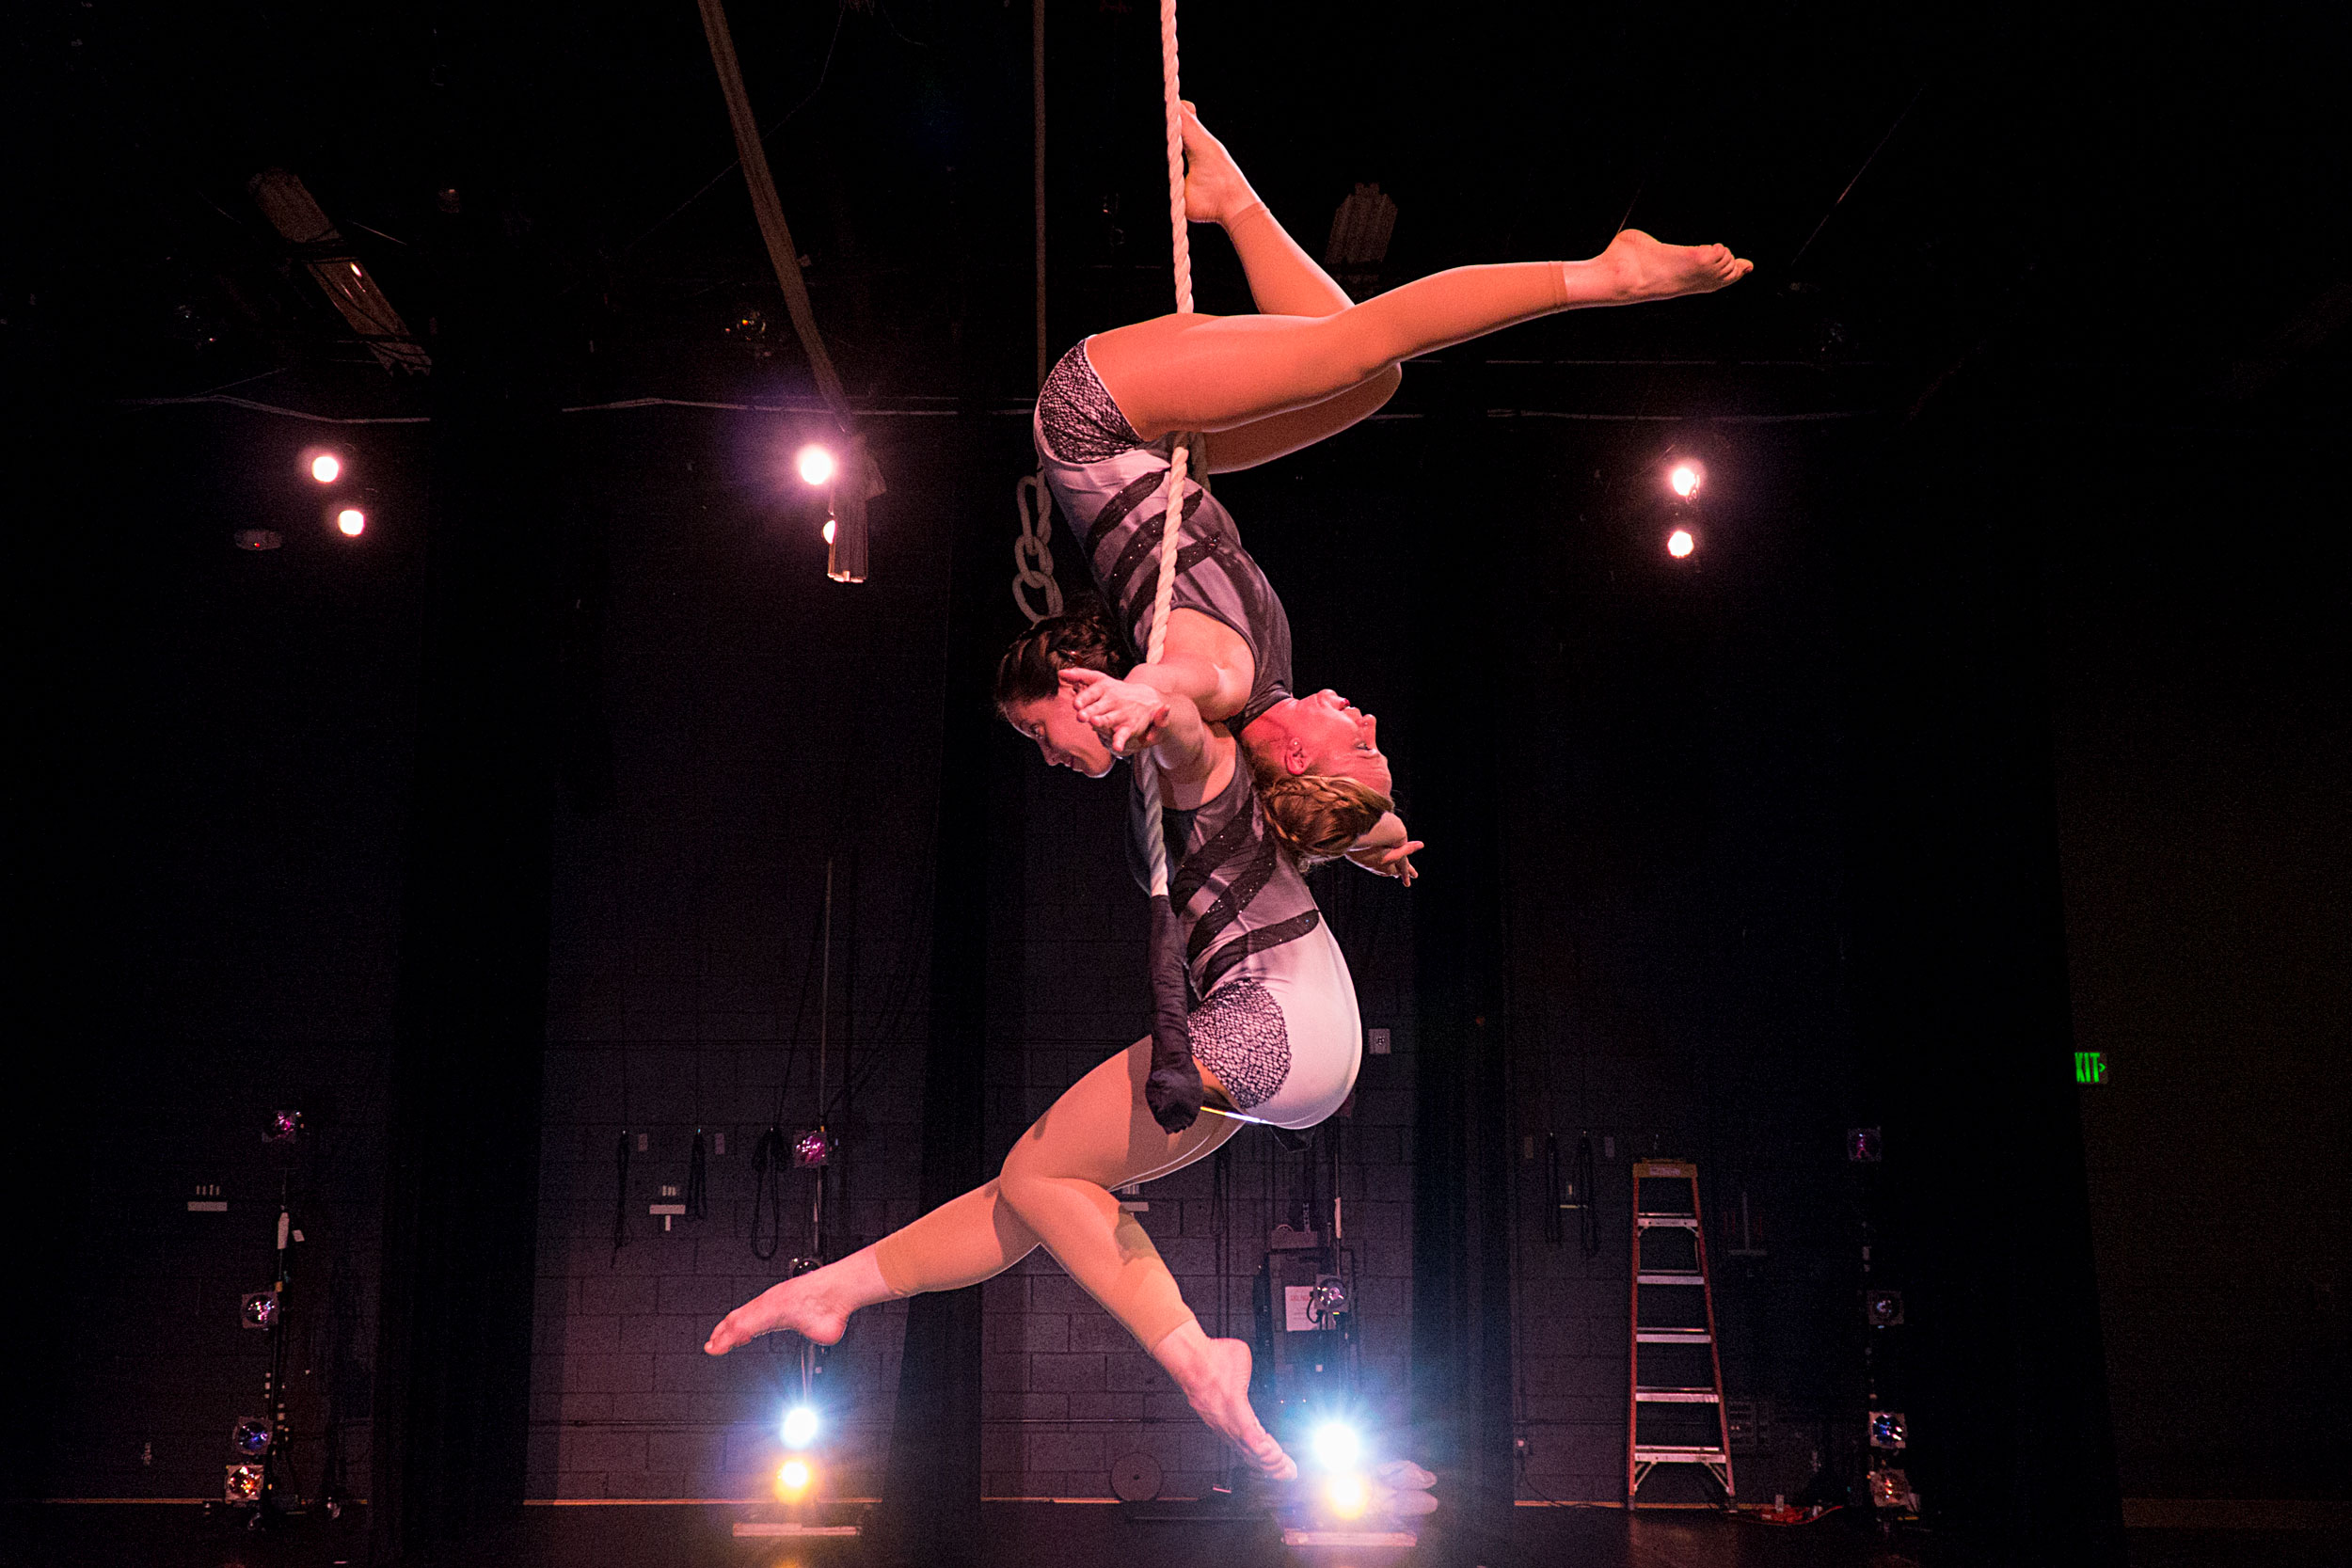 Megan Cattau and Alysha Perrin on a dance trapeze during a tech rehearsal for Frequent Flyers dance company's Aerial Dance Festival at the Dairy Arts Center in Boulder on July 30, 2019.